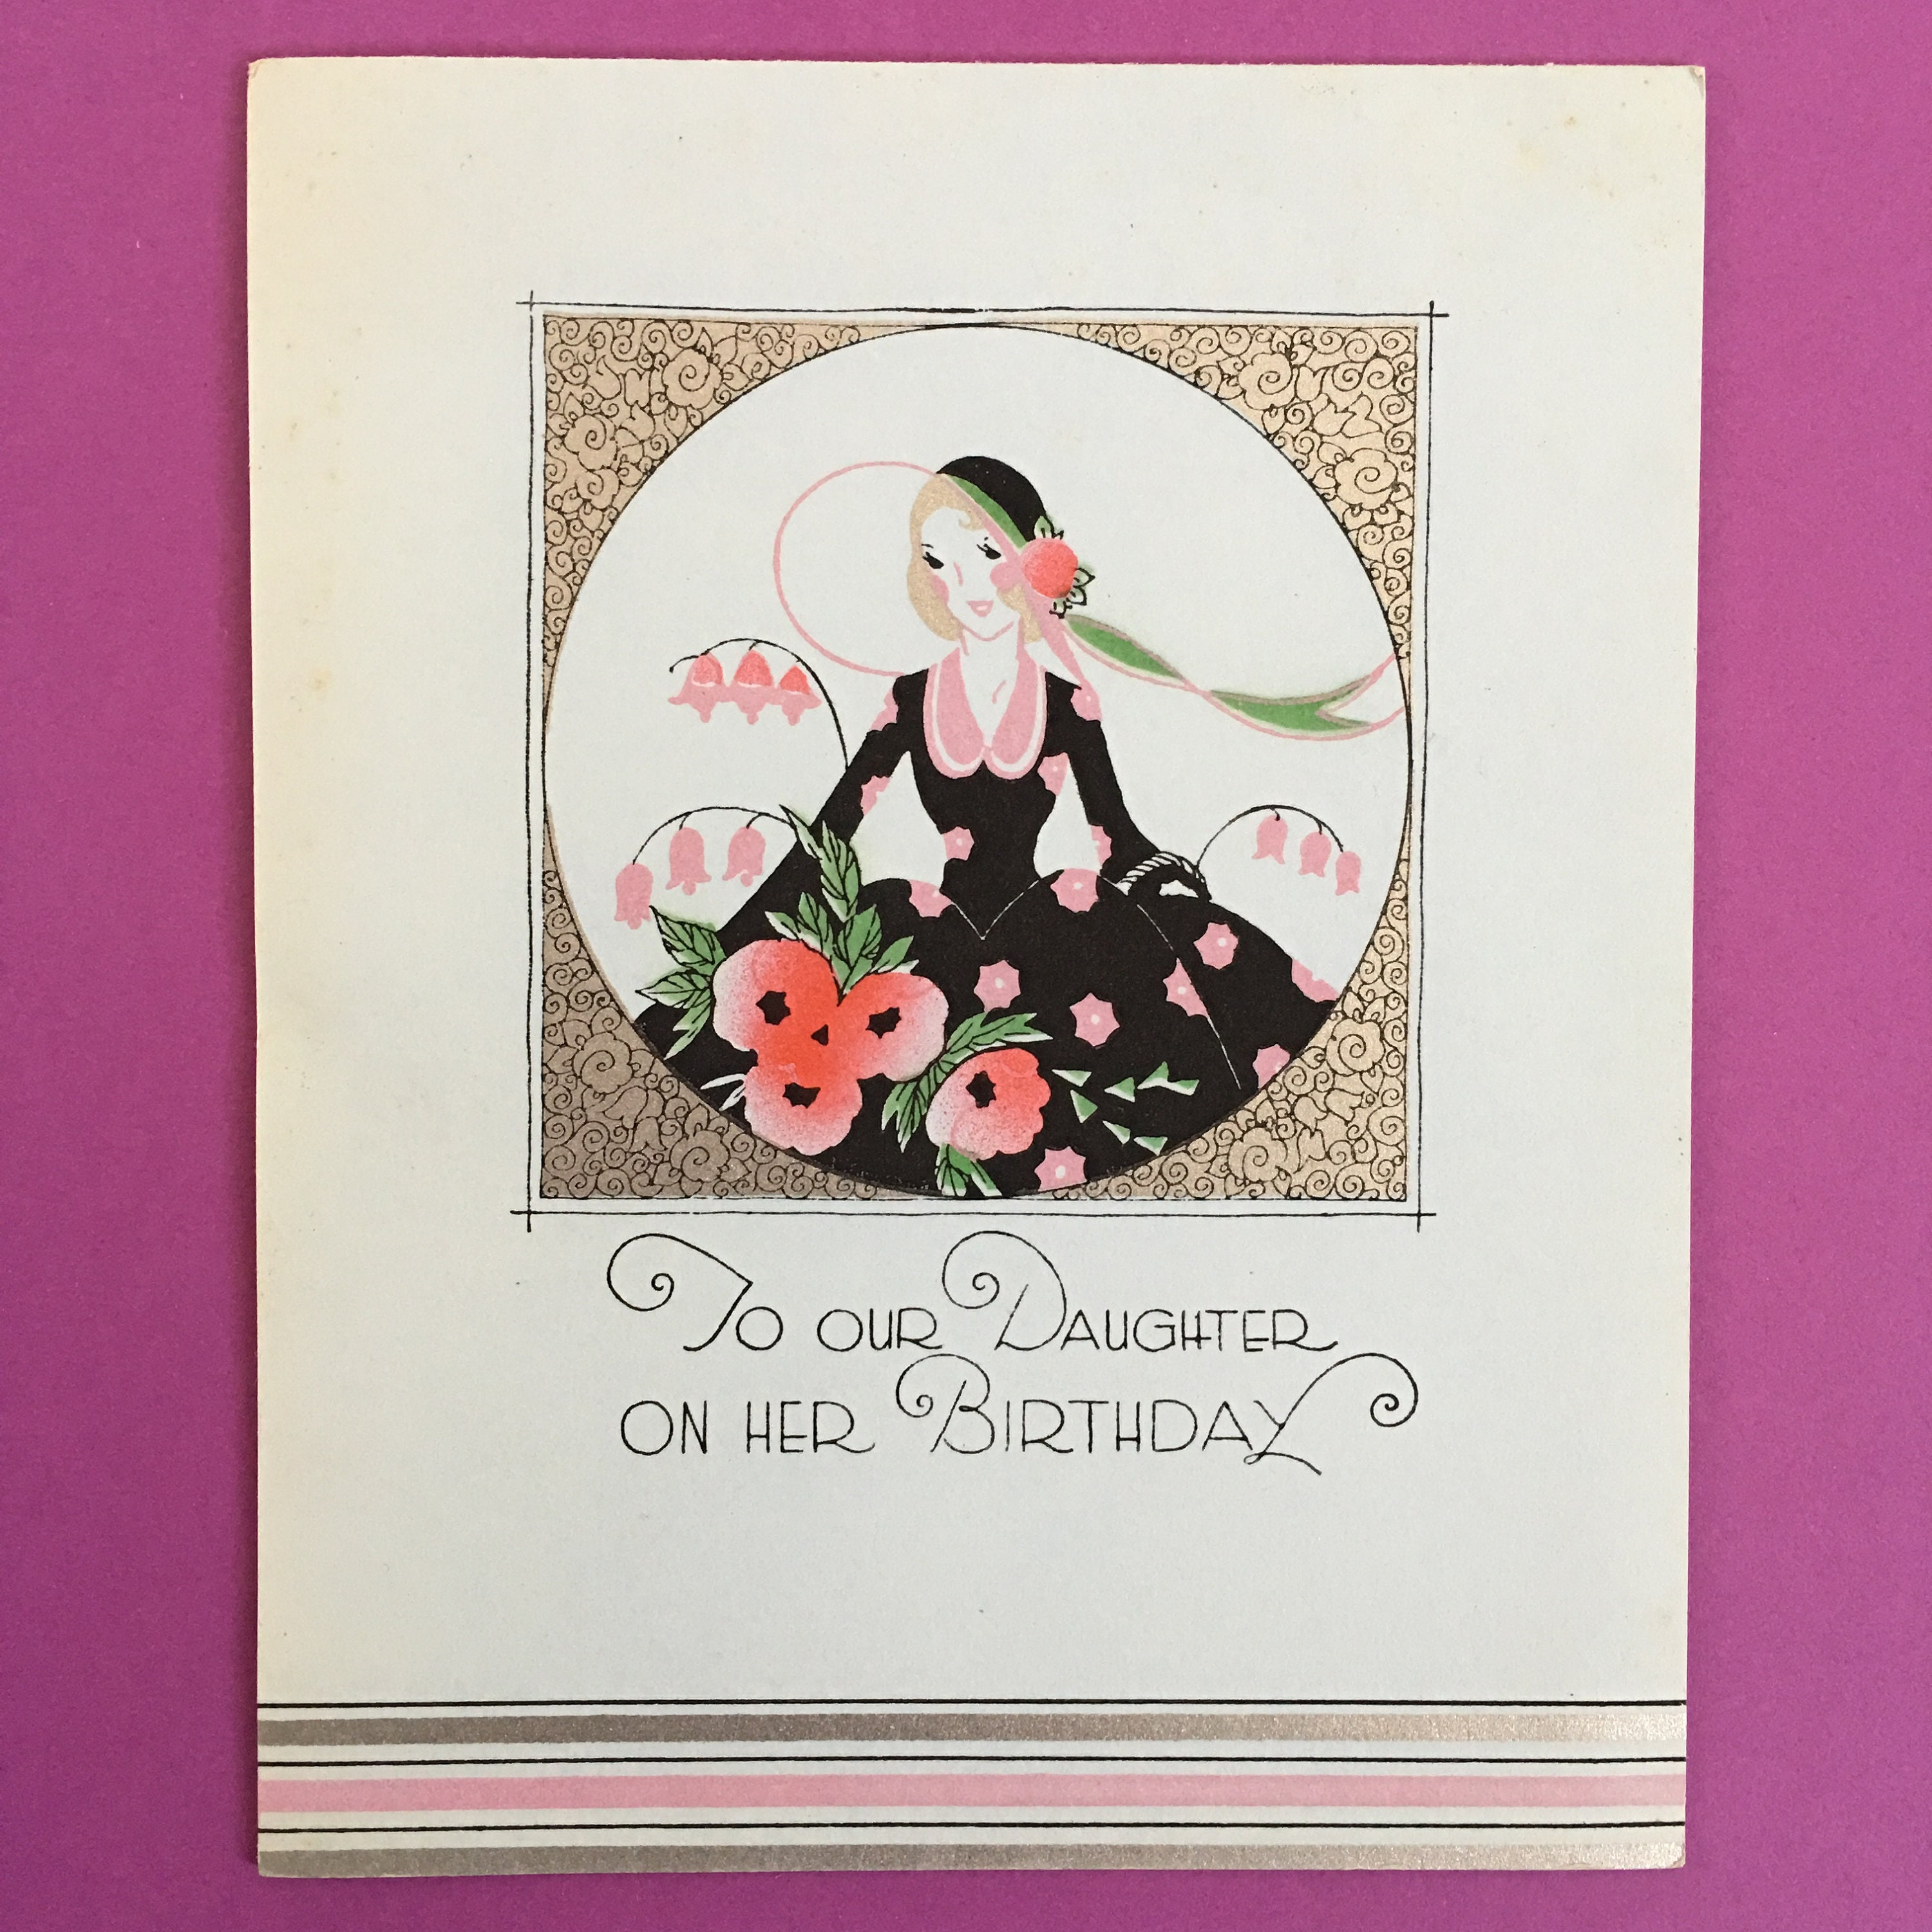 Antique Daughter Birthday Greeting Card 1920s Etsy